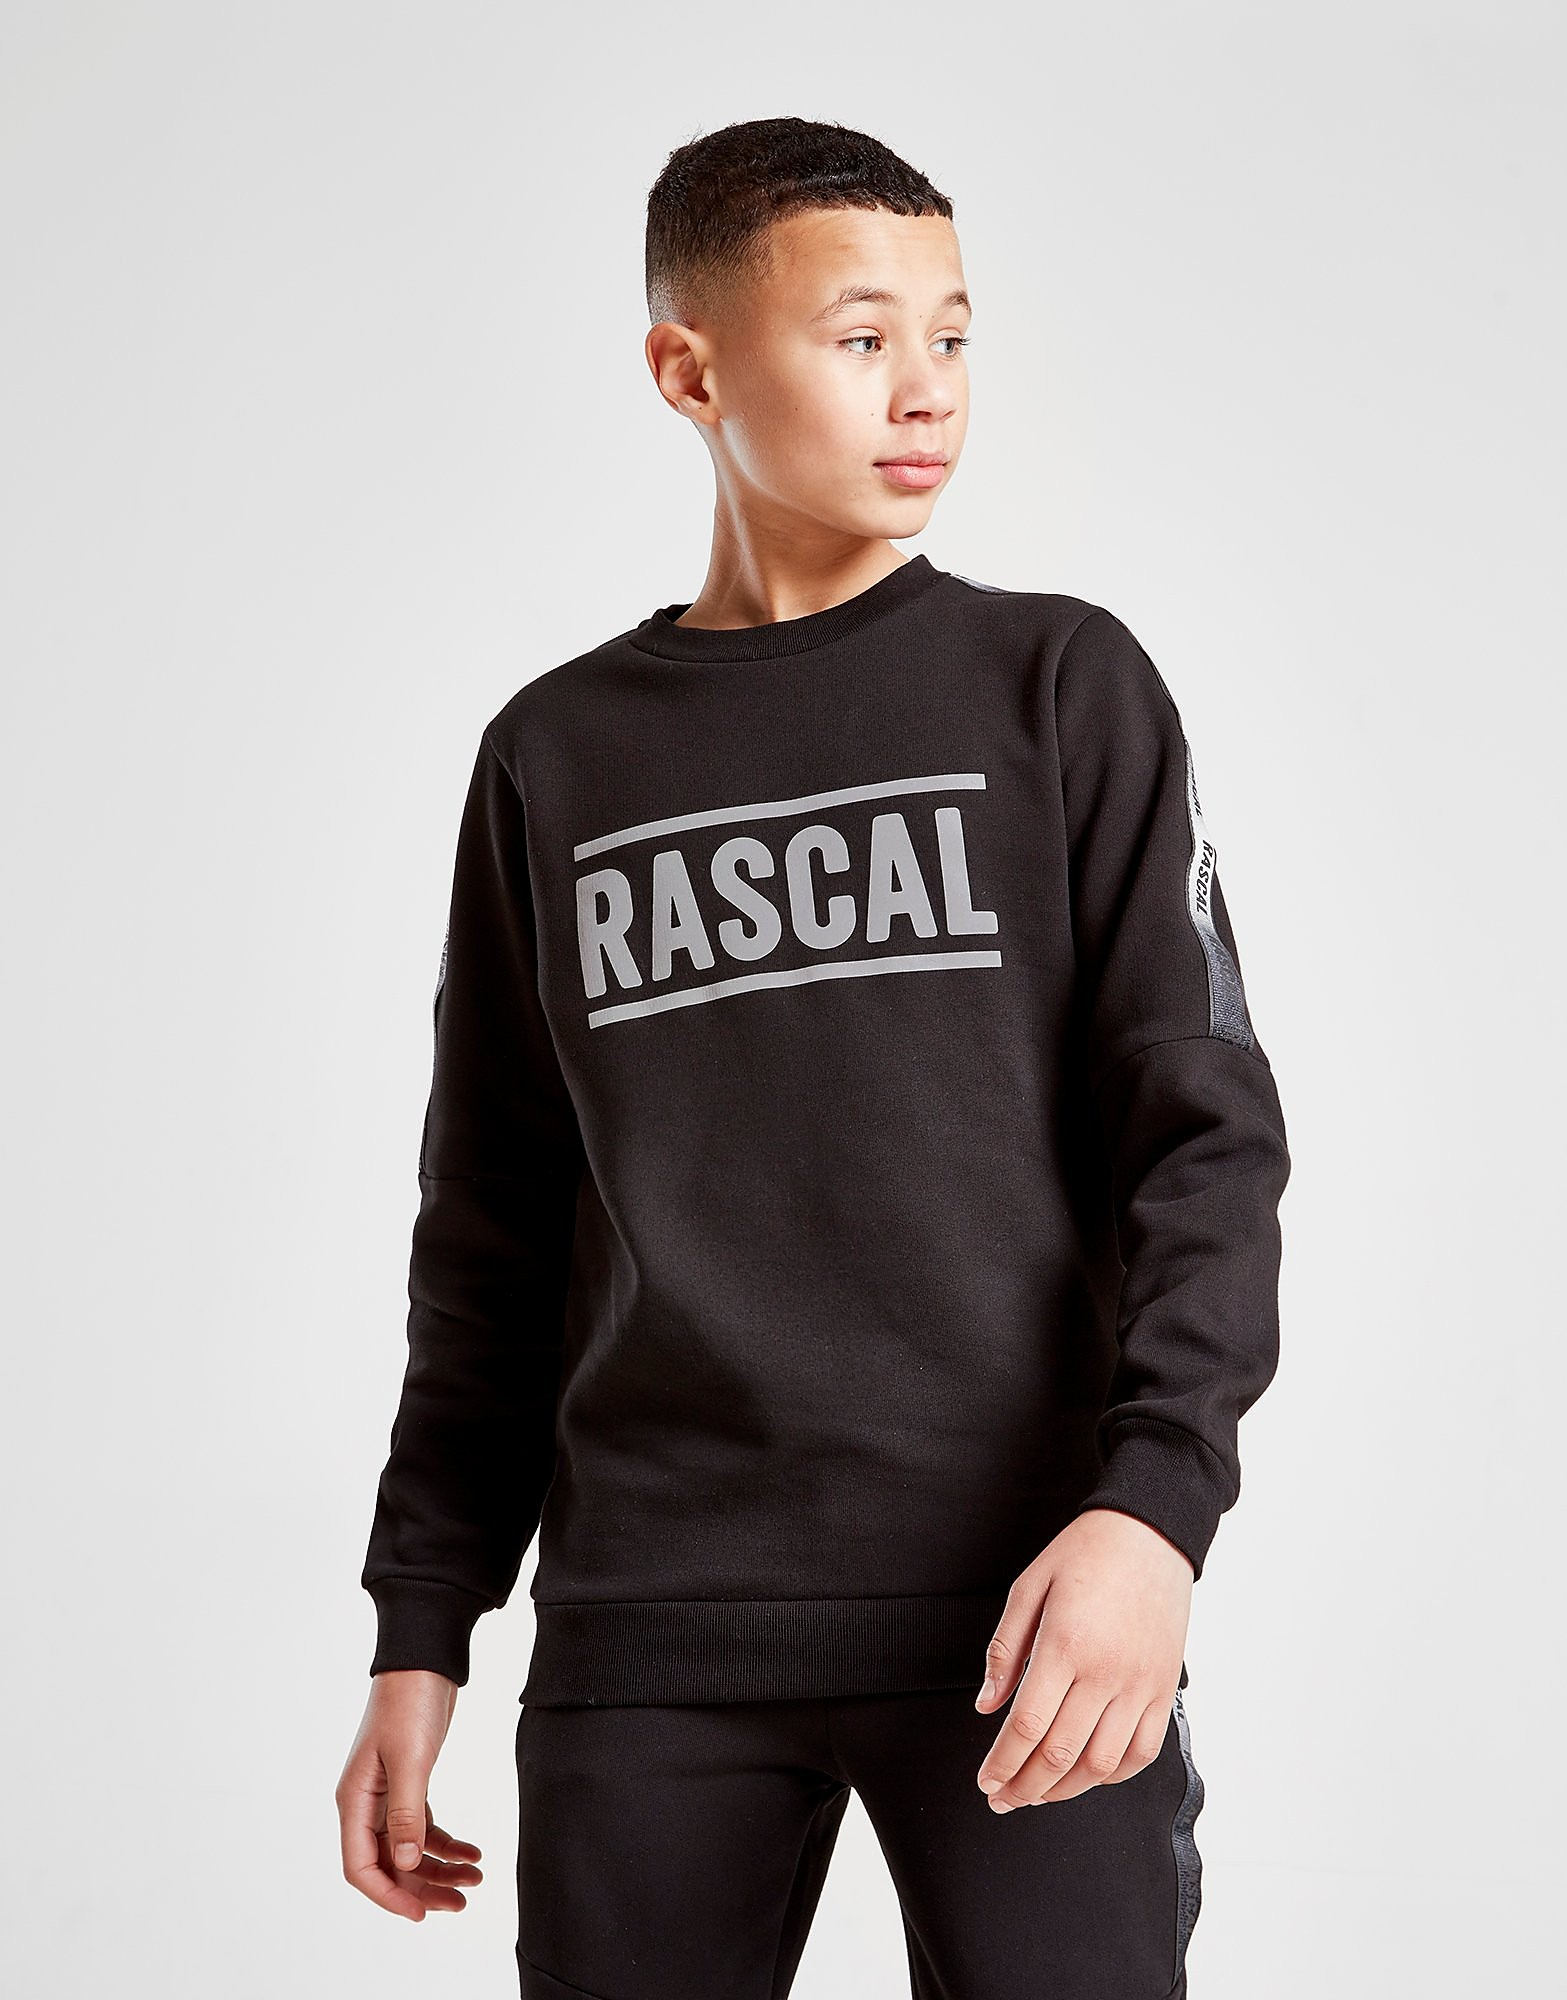 Rascal Reflective Fleece Crew Sweatshirt Junior Zwart Kind Zwart